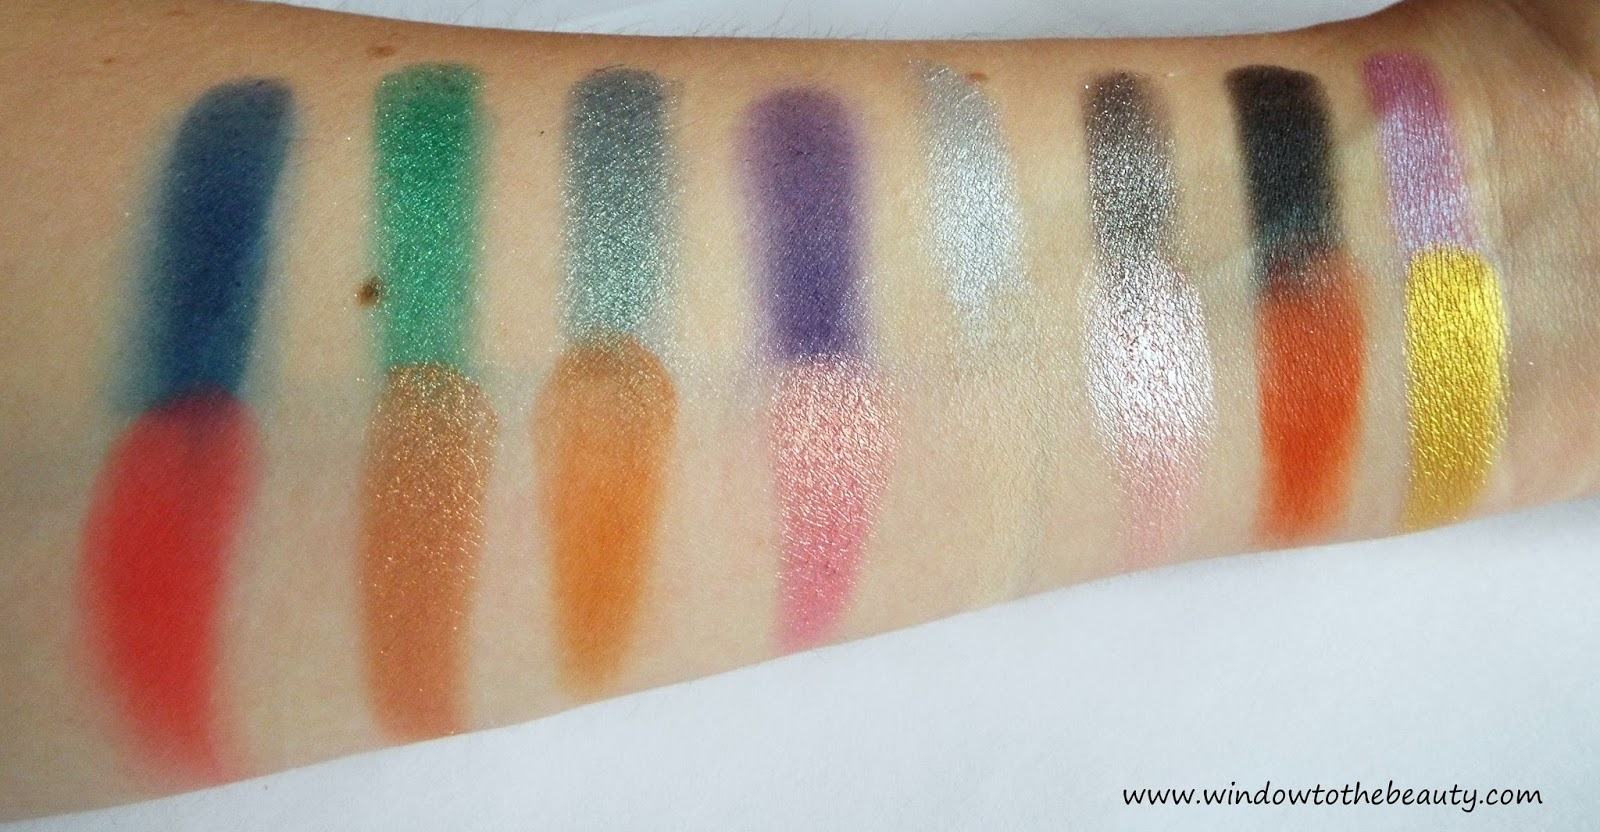 The Masquerade Mini Eyeshadow Palette by Juvia's Place #15